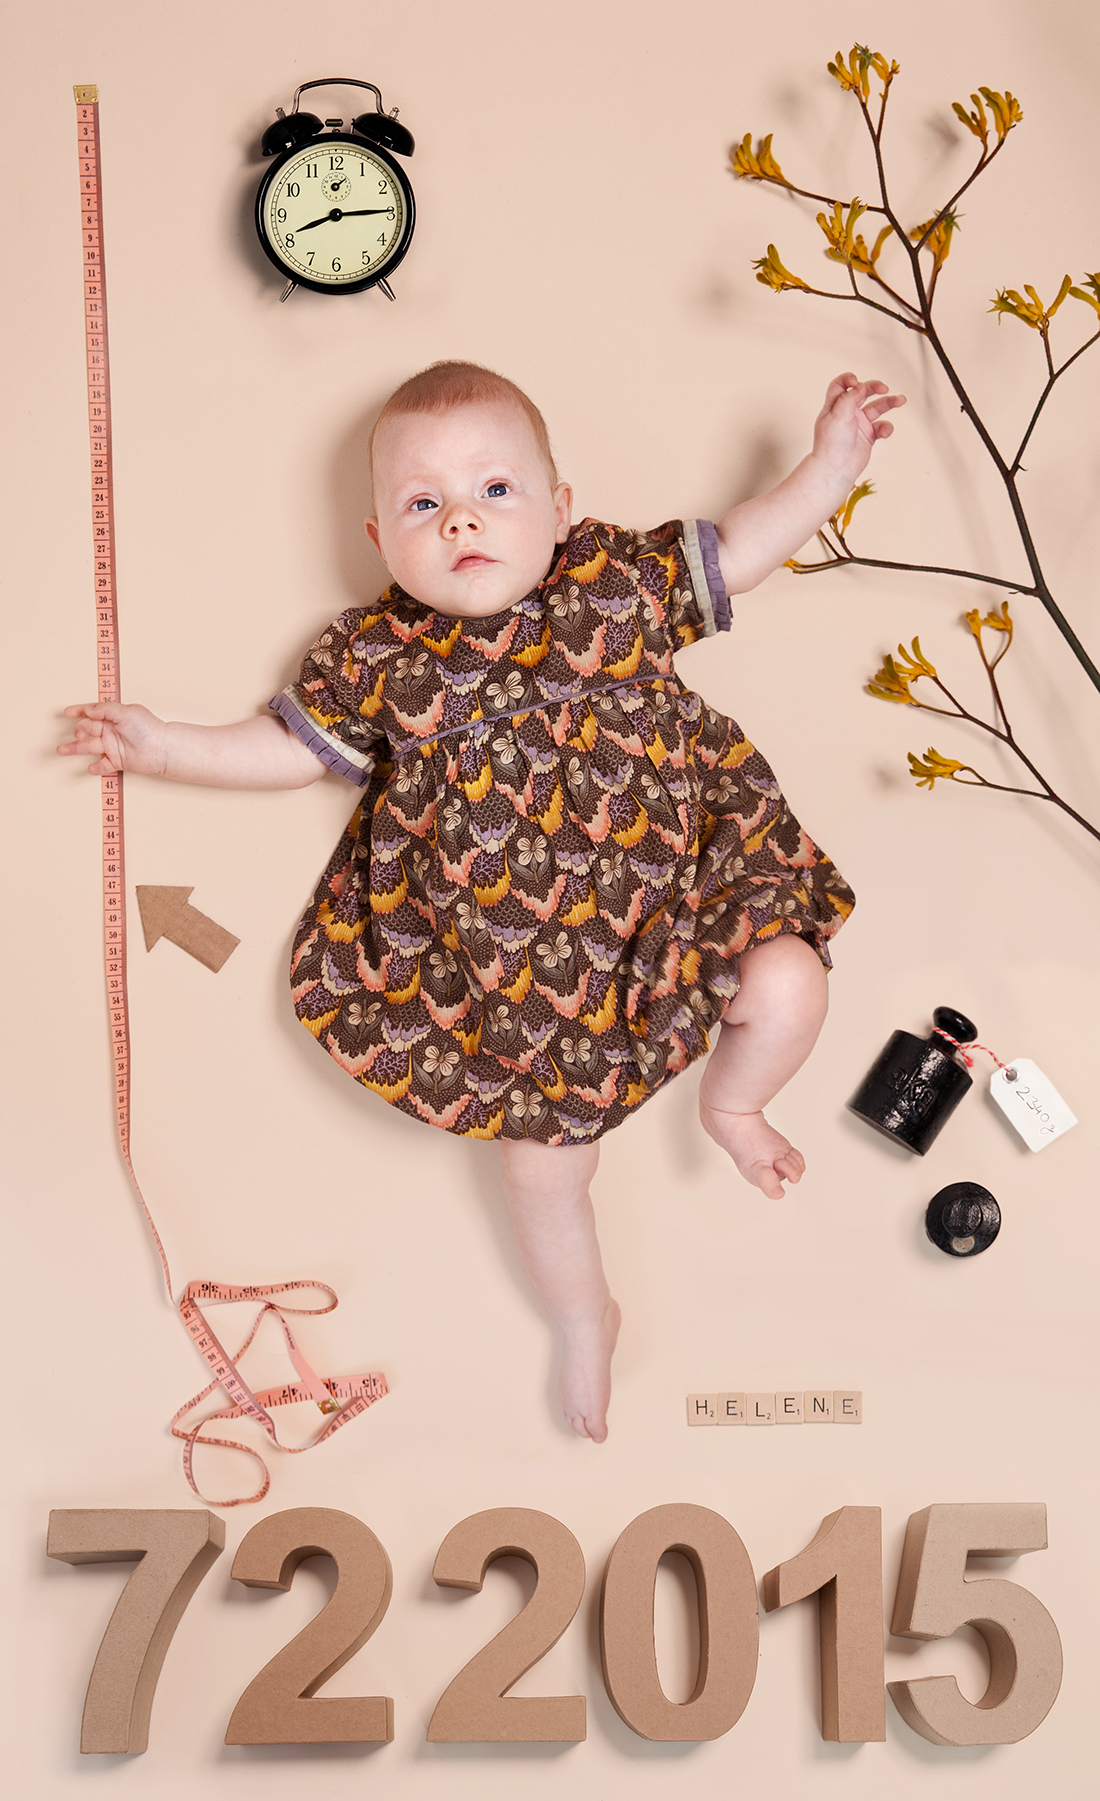 Babyportrait Collage Helene, Berlin 2015